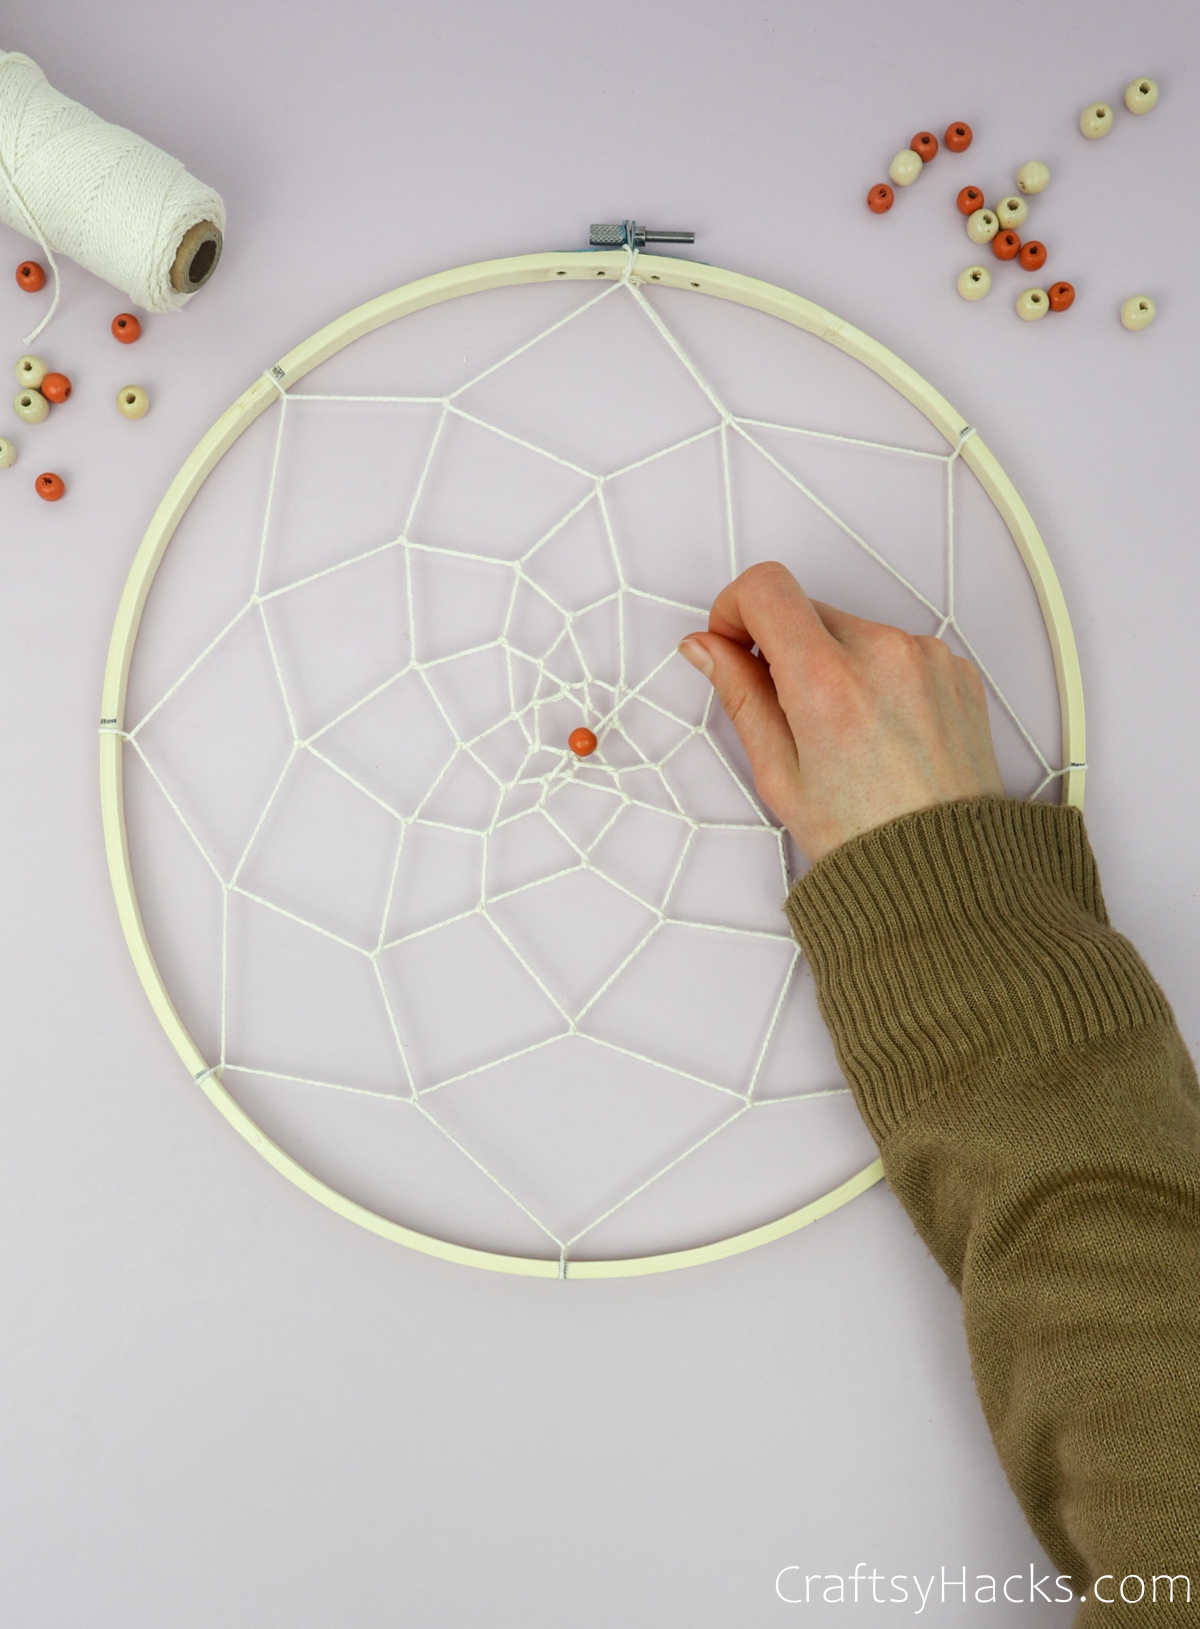 putting beads on string